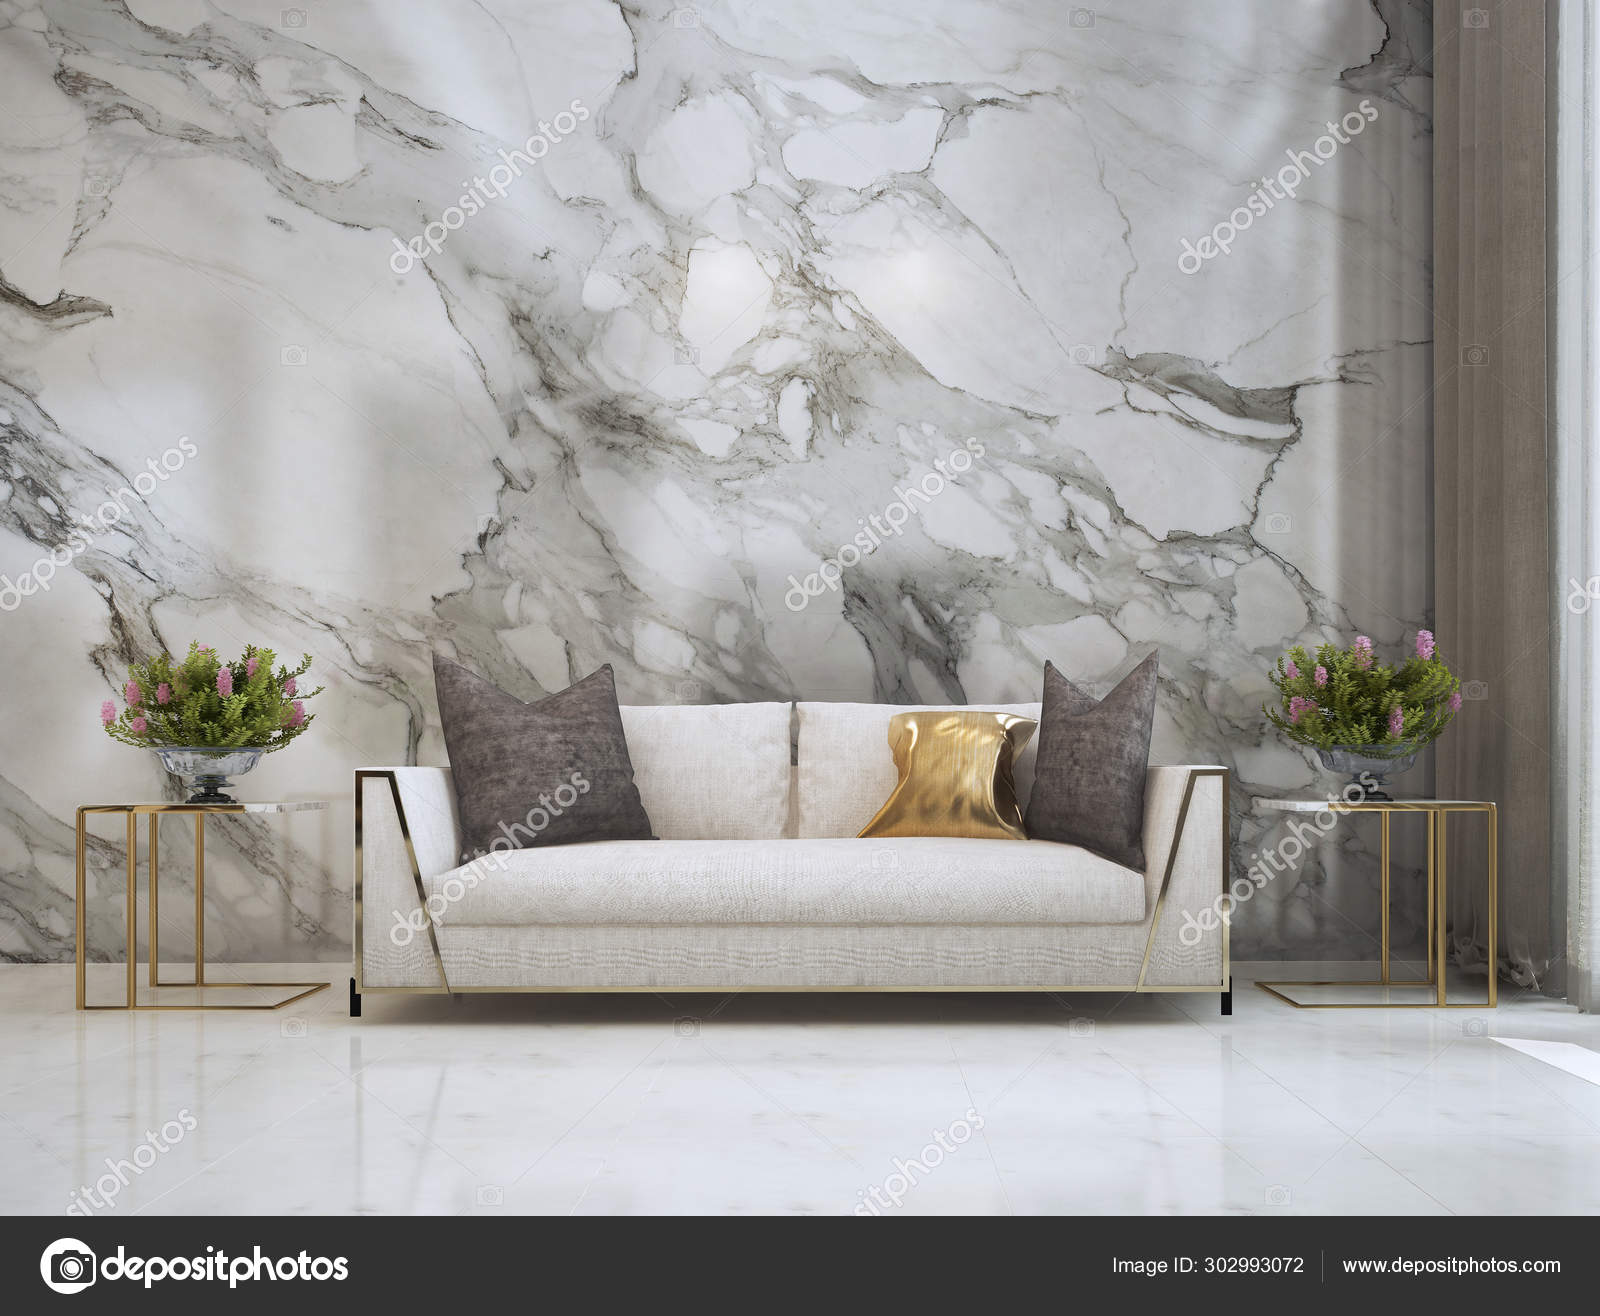 Luxury Living Room Interior Design Marble Wall Texture Background Stock Photo C Teeraphan 302993072